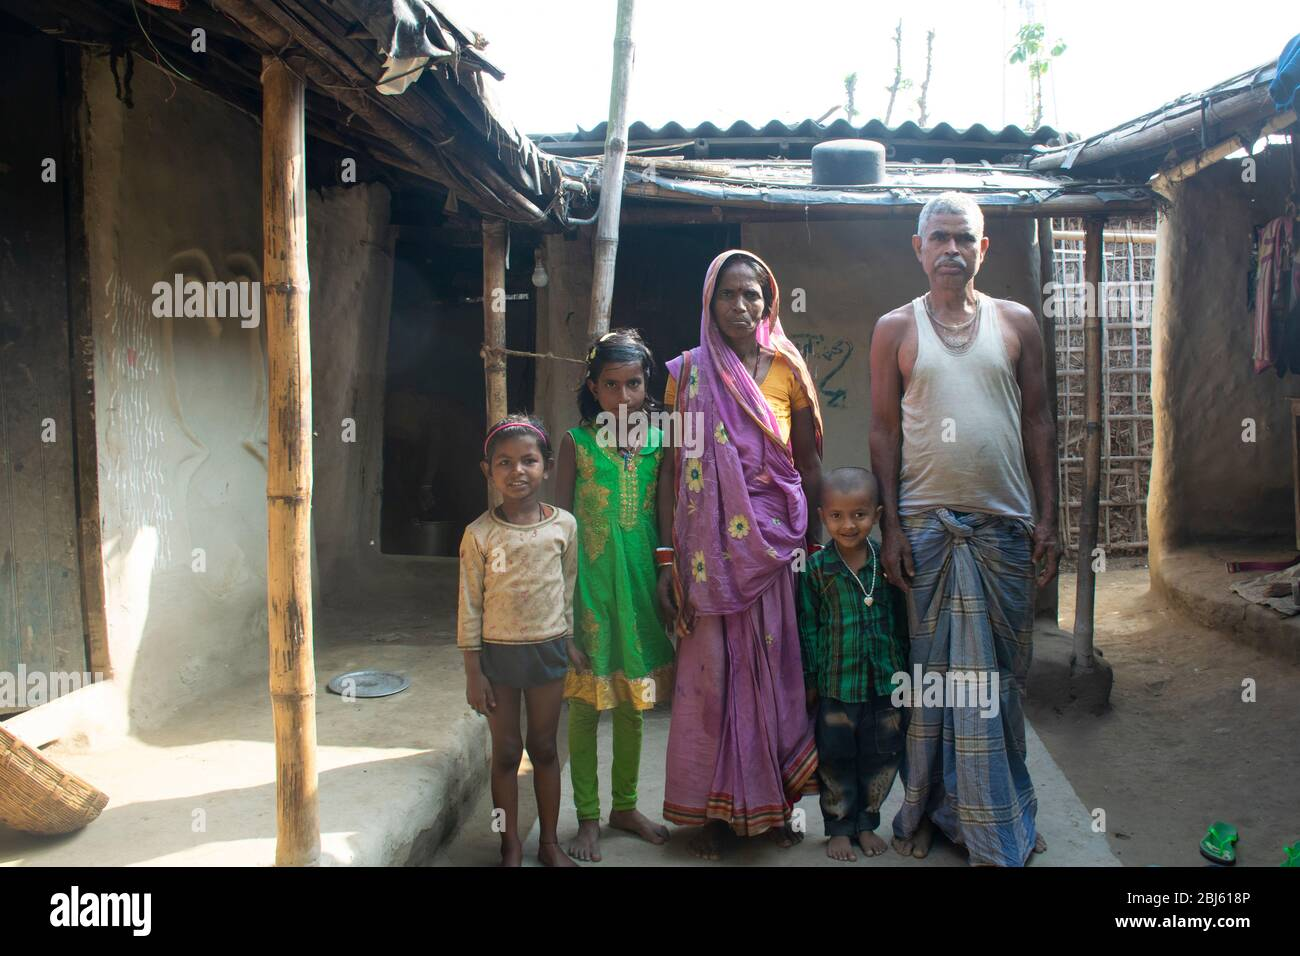 Poor Indian family in front of their house, Bihar, India Stock Photo